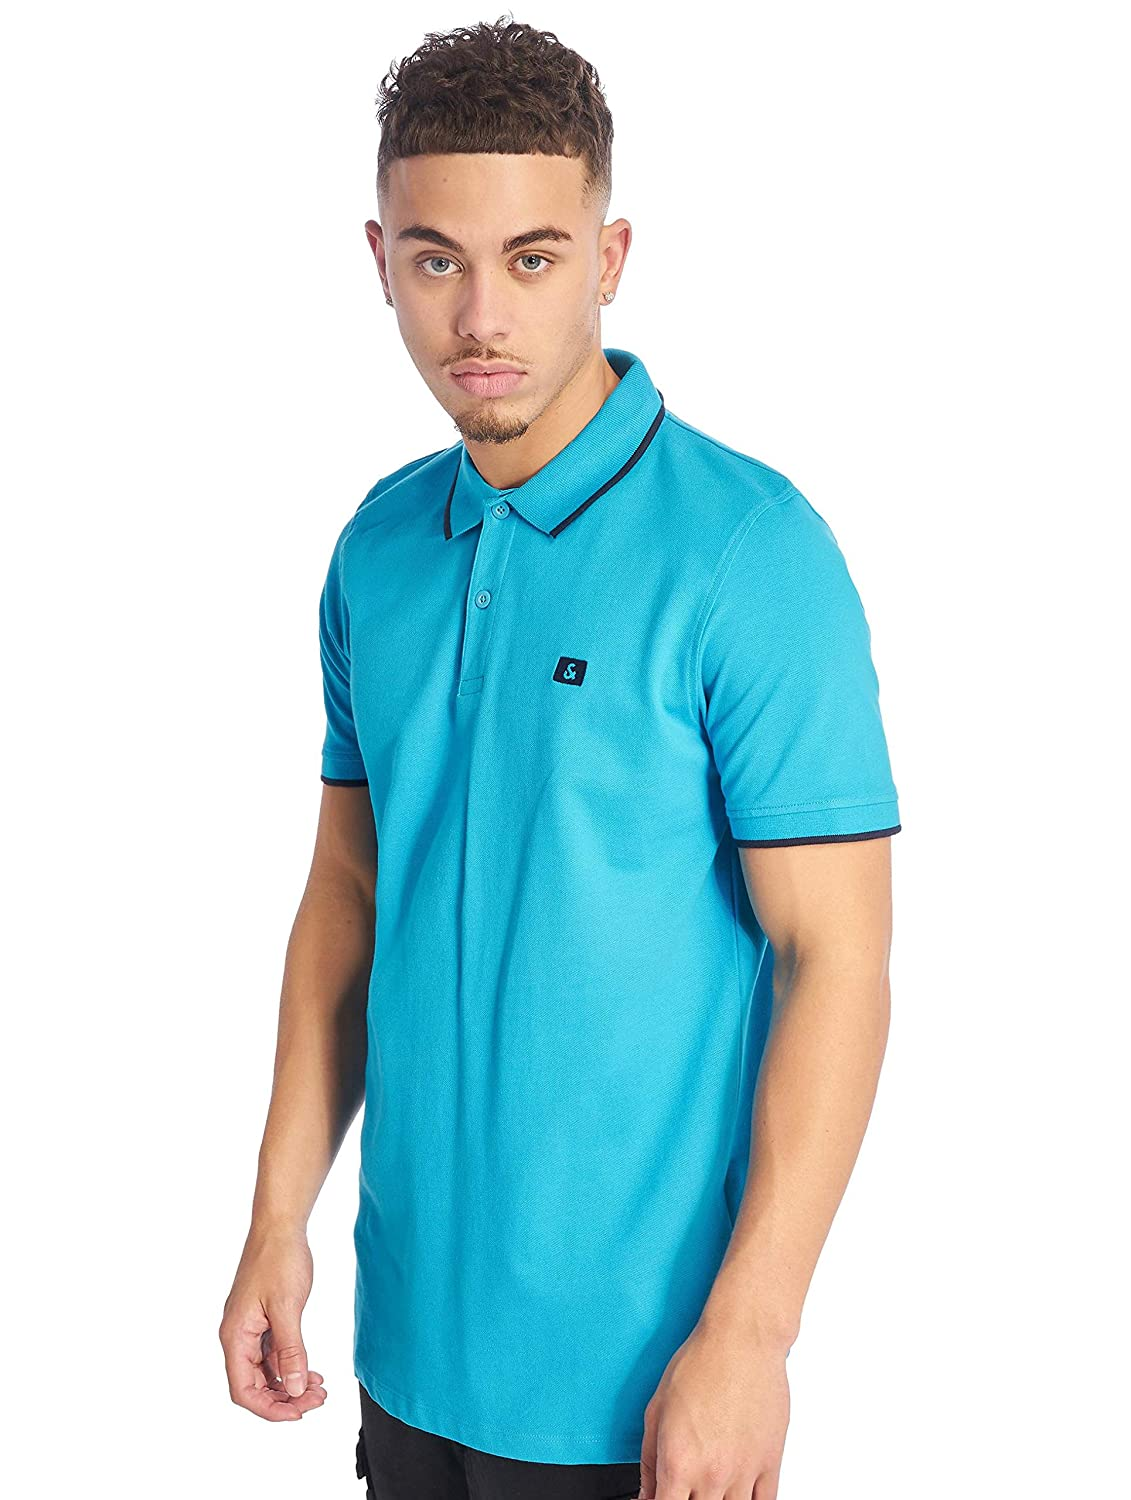 Polo Jack and Jones JJESTONE Azul del Hombre: Amazon.es: Ropa y ...